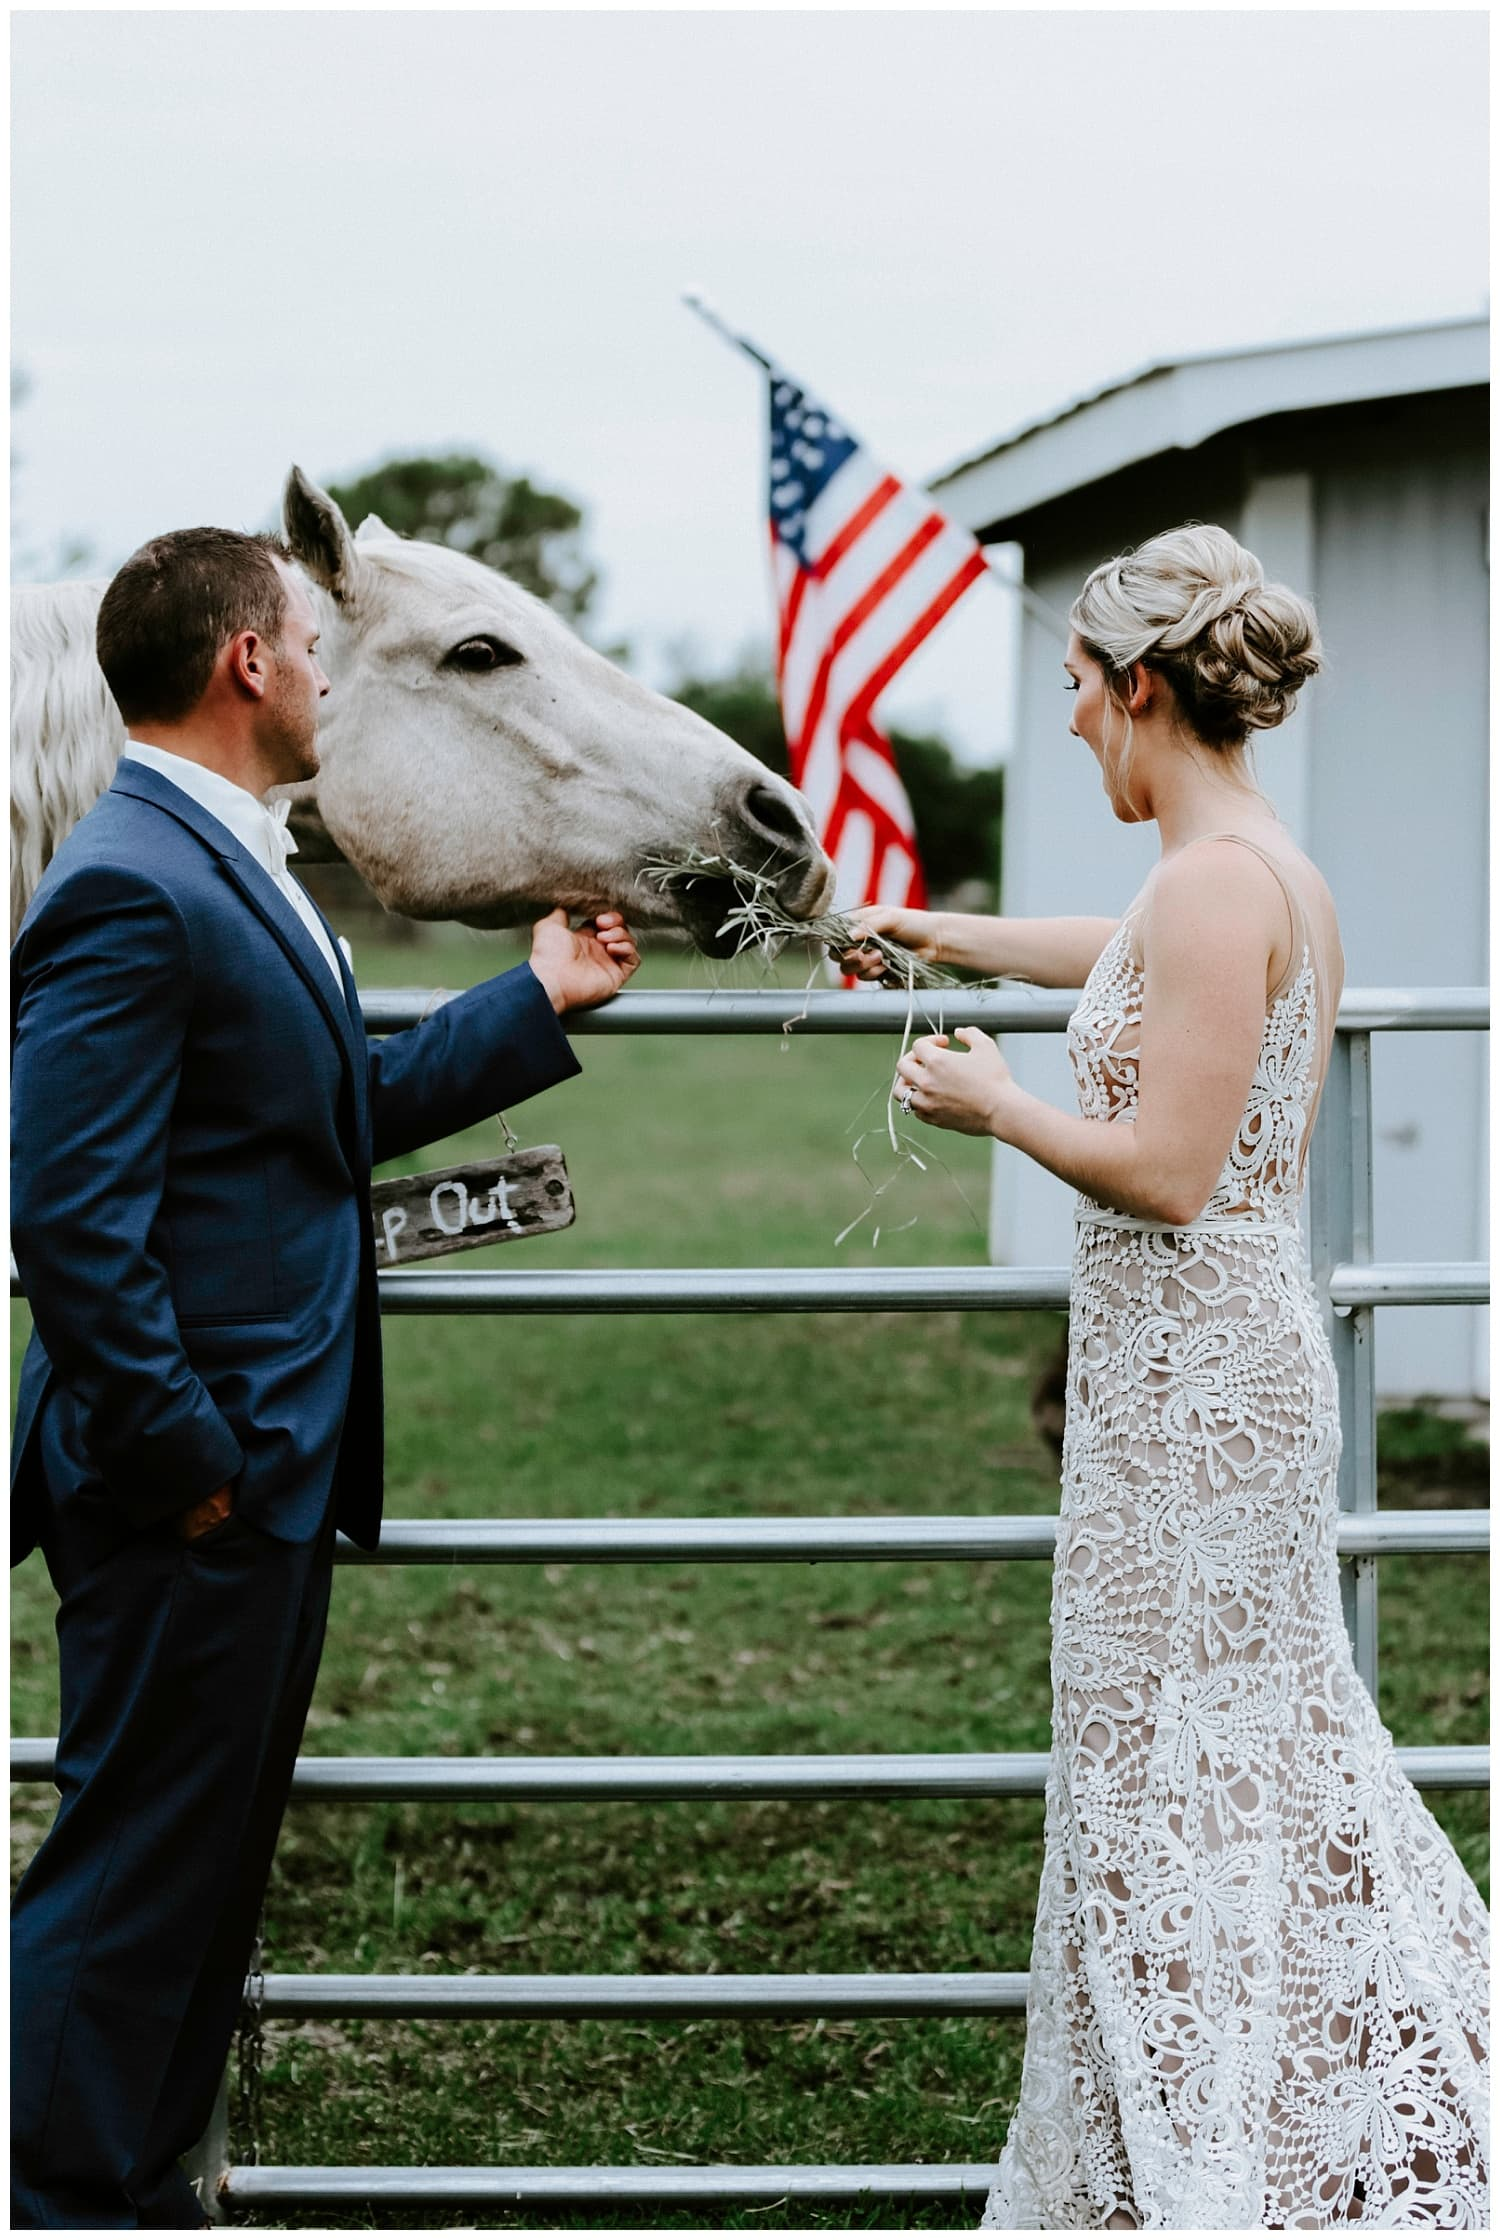 feeding horse at wedding